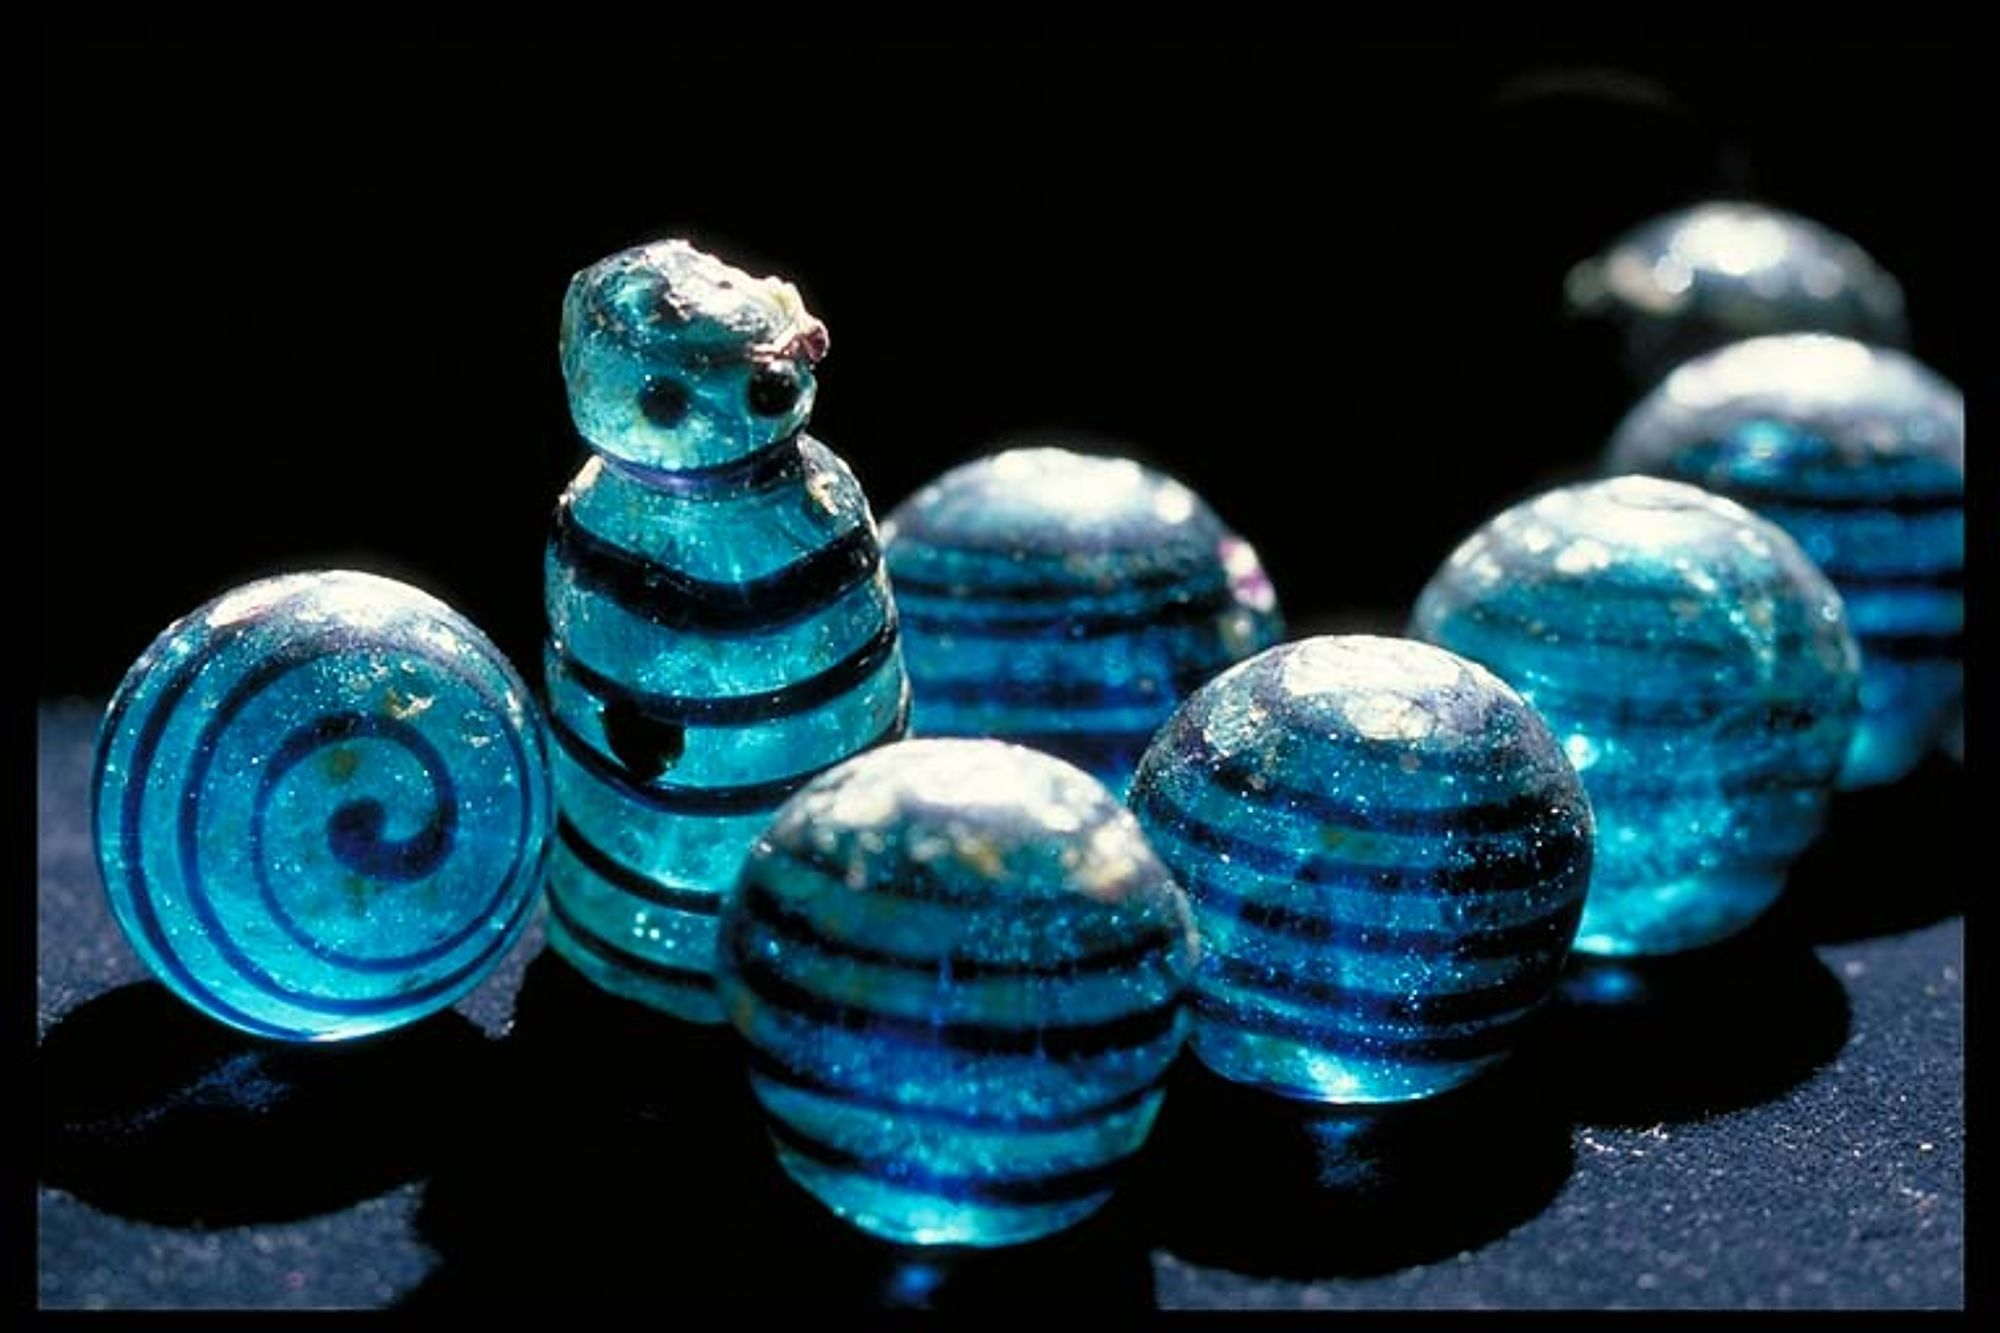 Hnefatafl Glass Pieces dated to 800 - 1099 CE, found in Björkö, Norr om Borg, Grav, Kammargrav (Bj 523). Historiska Museum, Stockholm, Sweden, 106813. Photo: December 9, 2000.